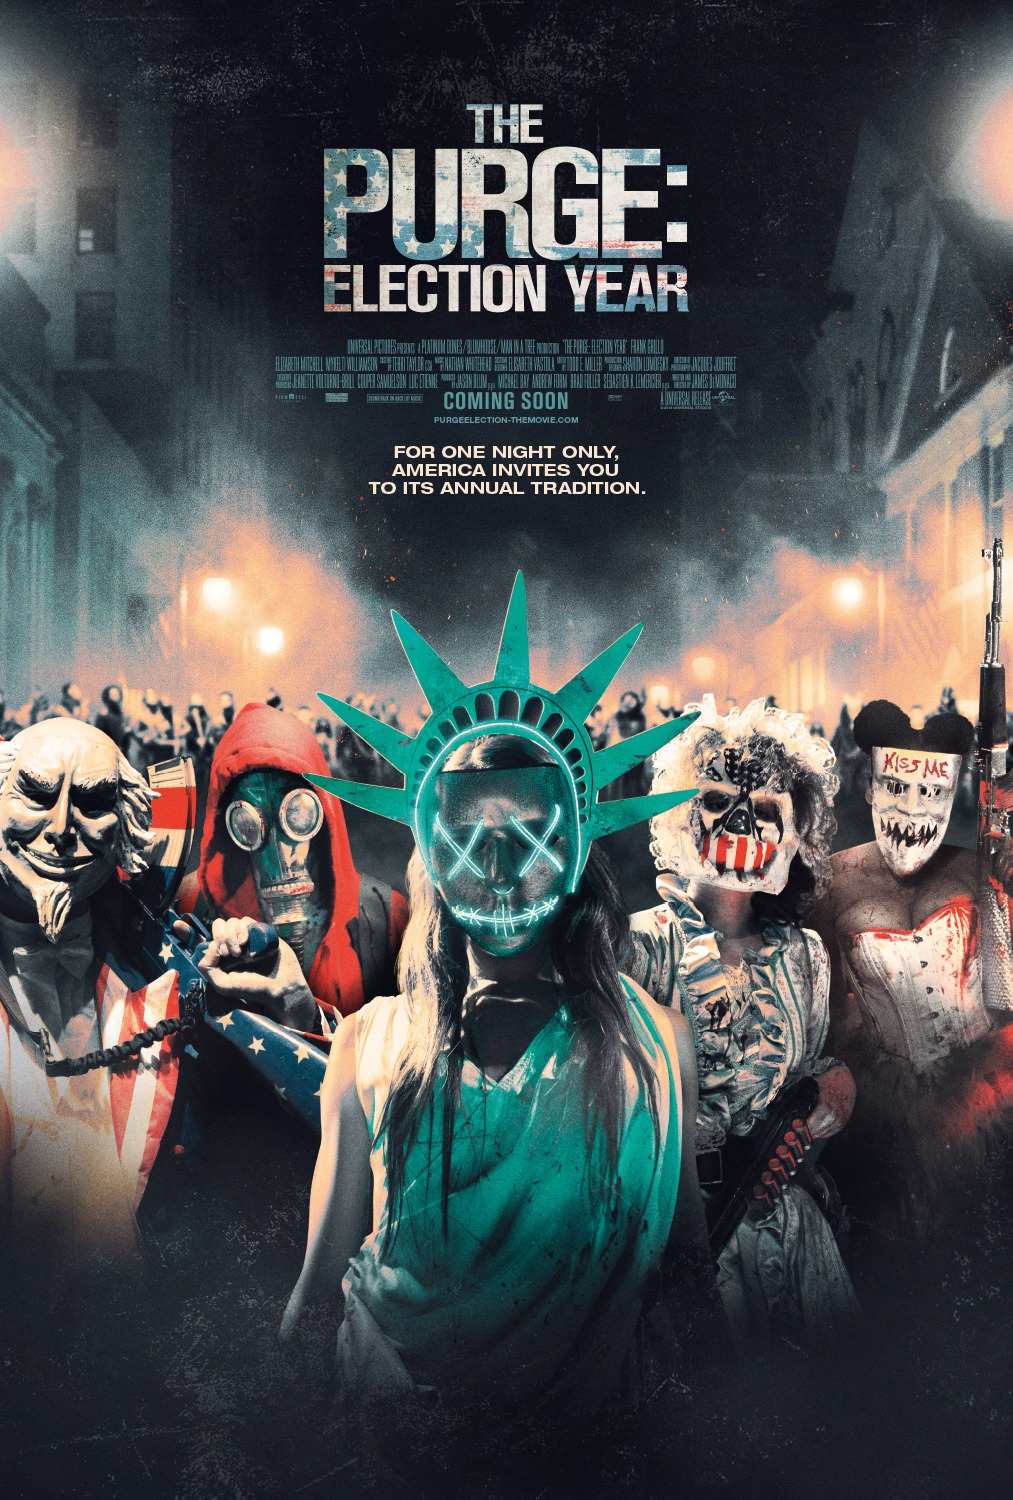 6 The Purge Election Year Poster